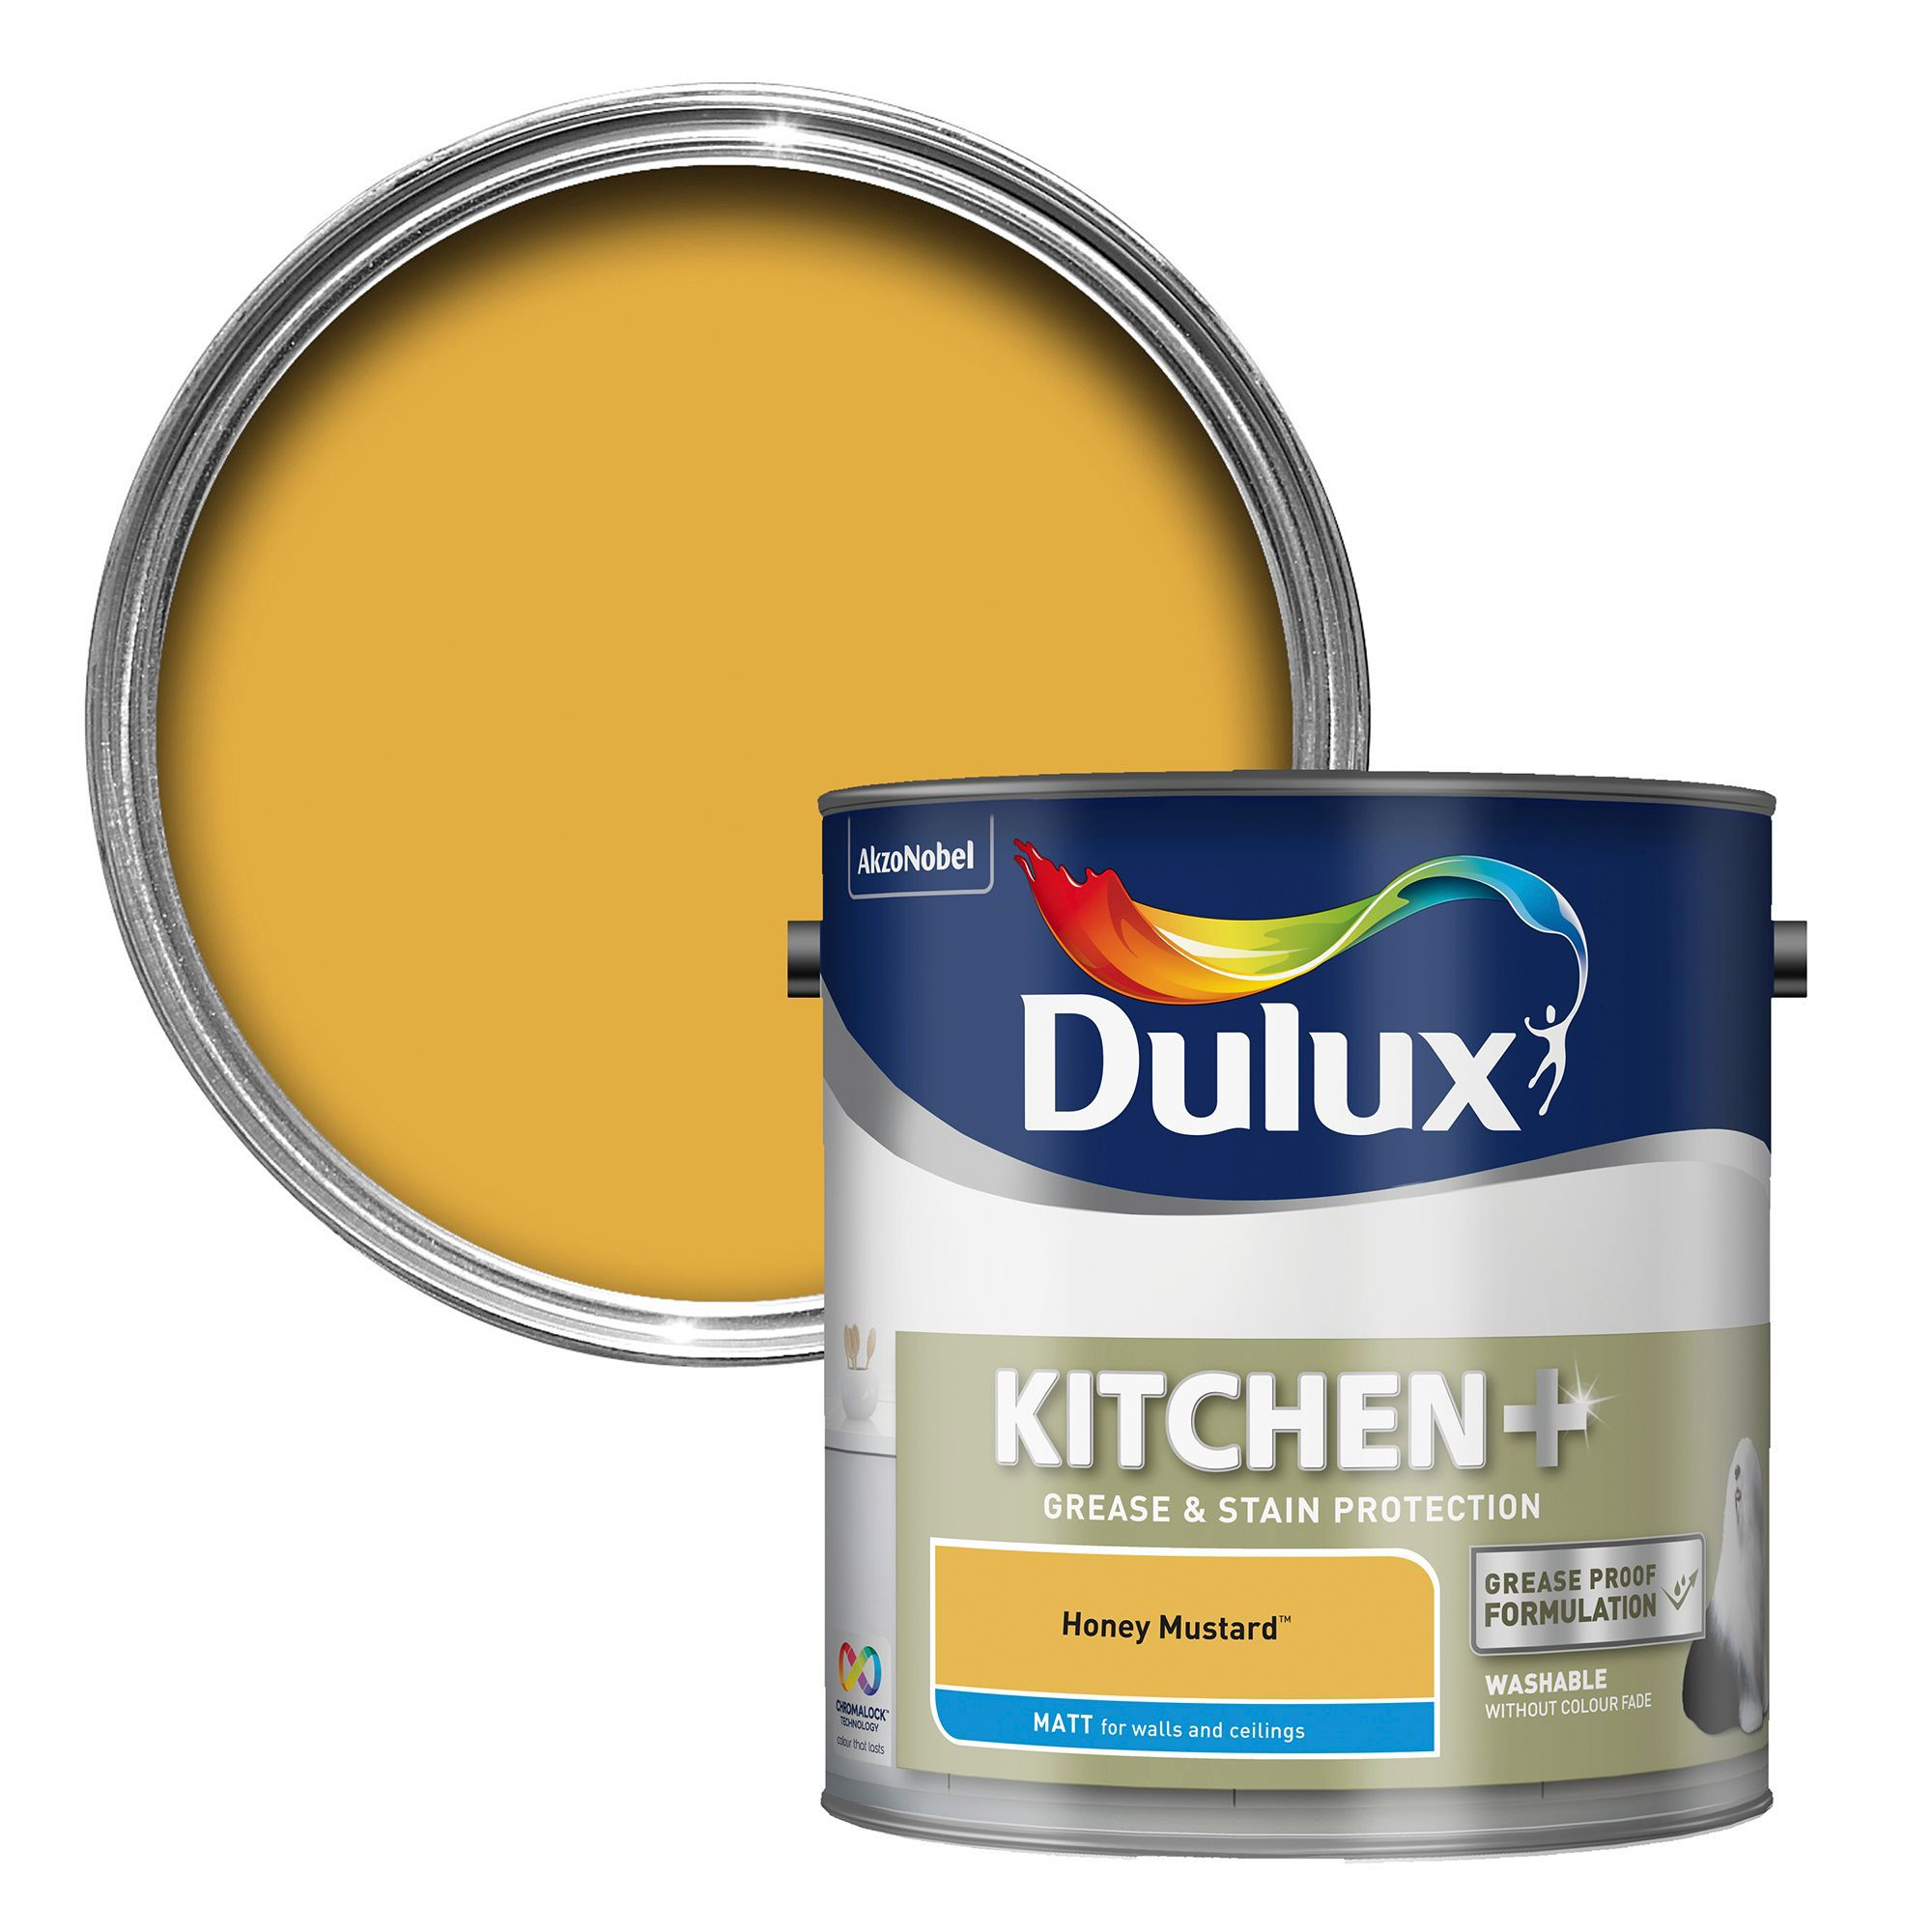 Mustard Kitchen Paint: Dulux Kitchen Honey Mustard Matt Emulsion Paint 2.5L